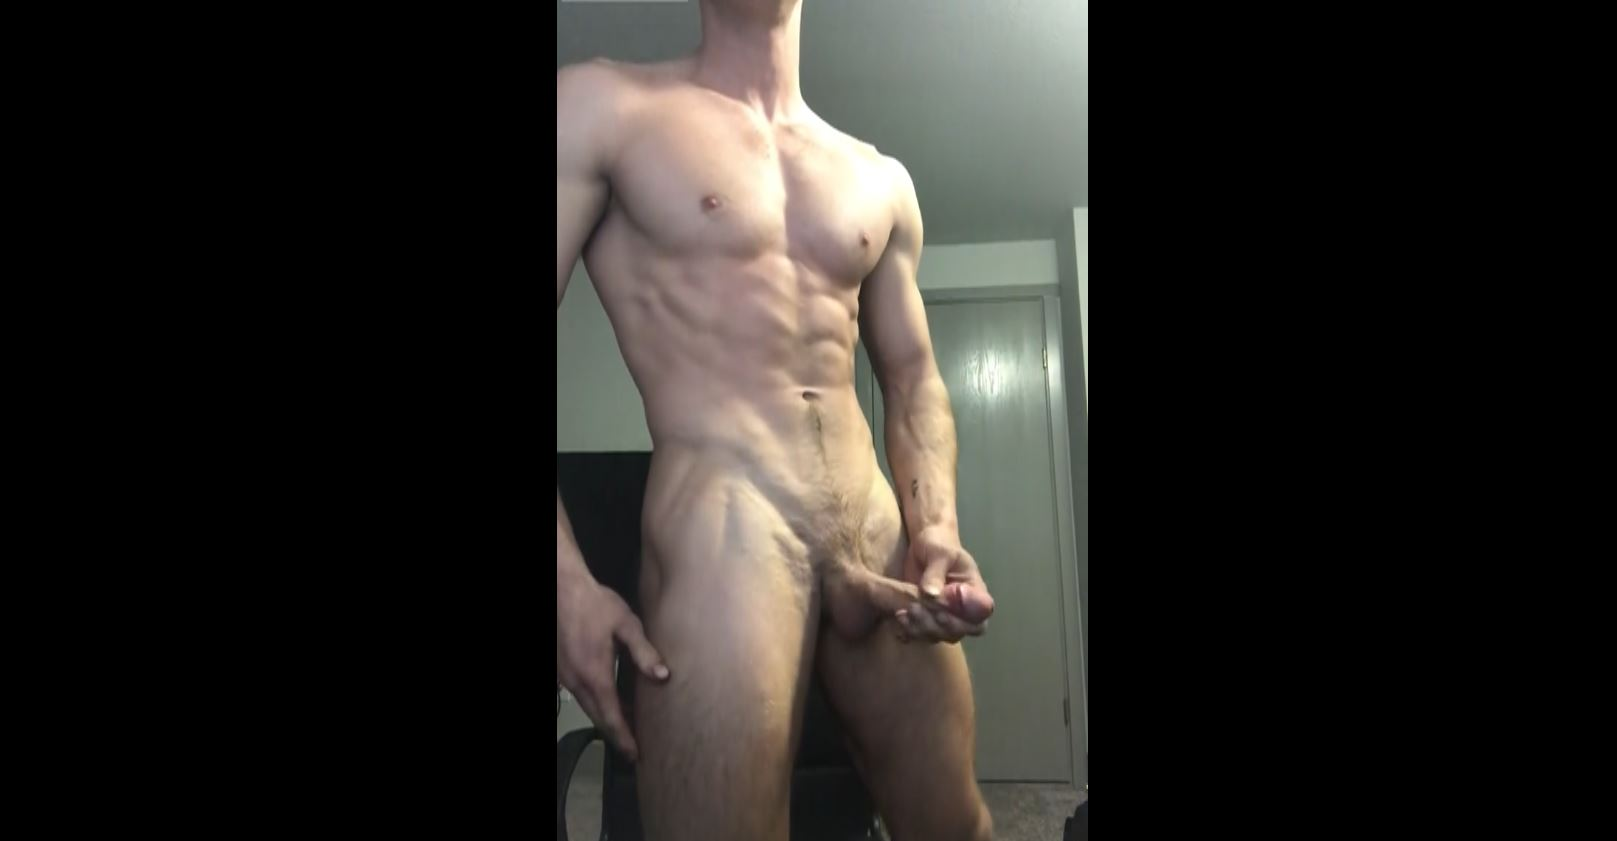 Being verbal and showing off my body and cock - Kayden Godly